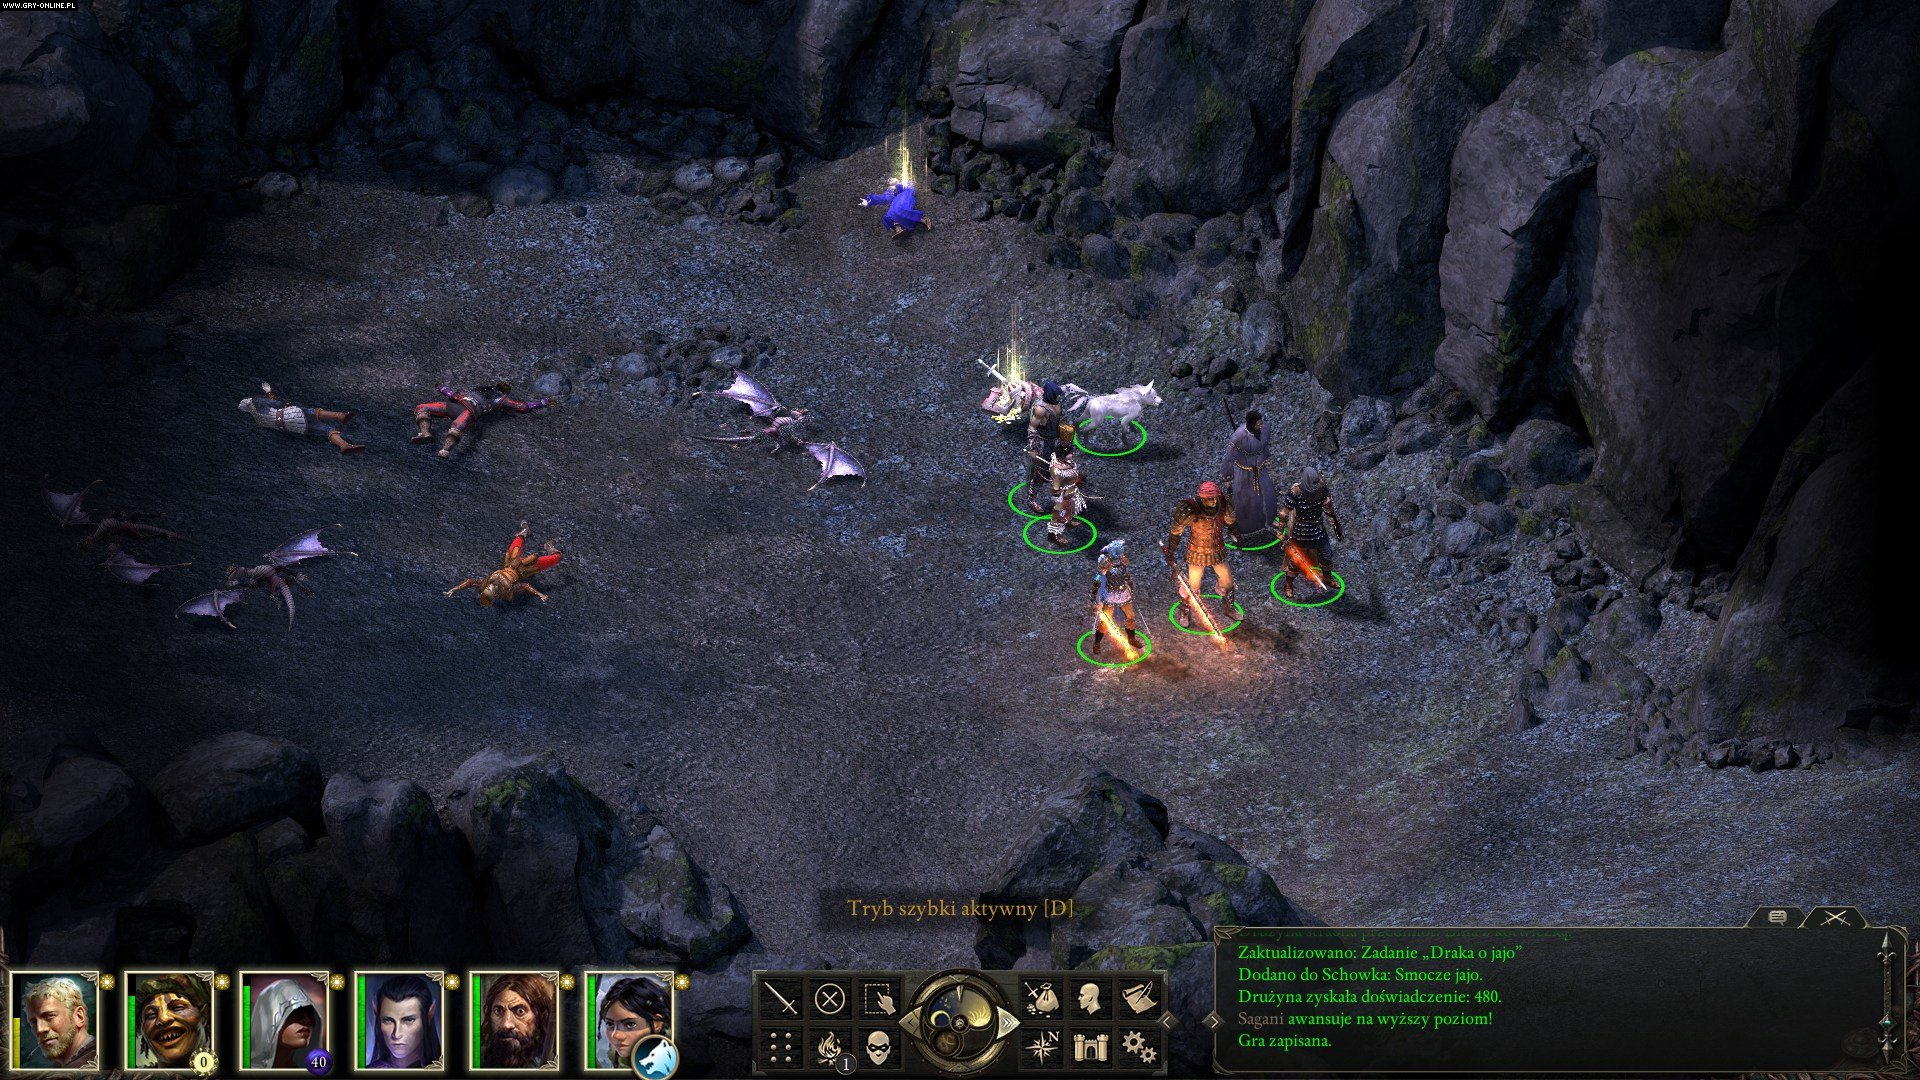 Pillars of Eternity PC Games Image 5/93, Obsidian Entertainment, Paradox Interactive